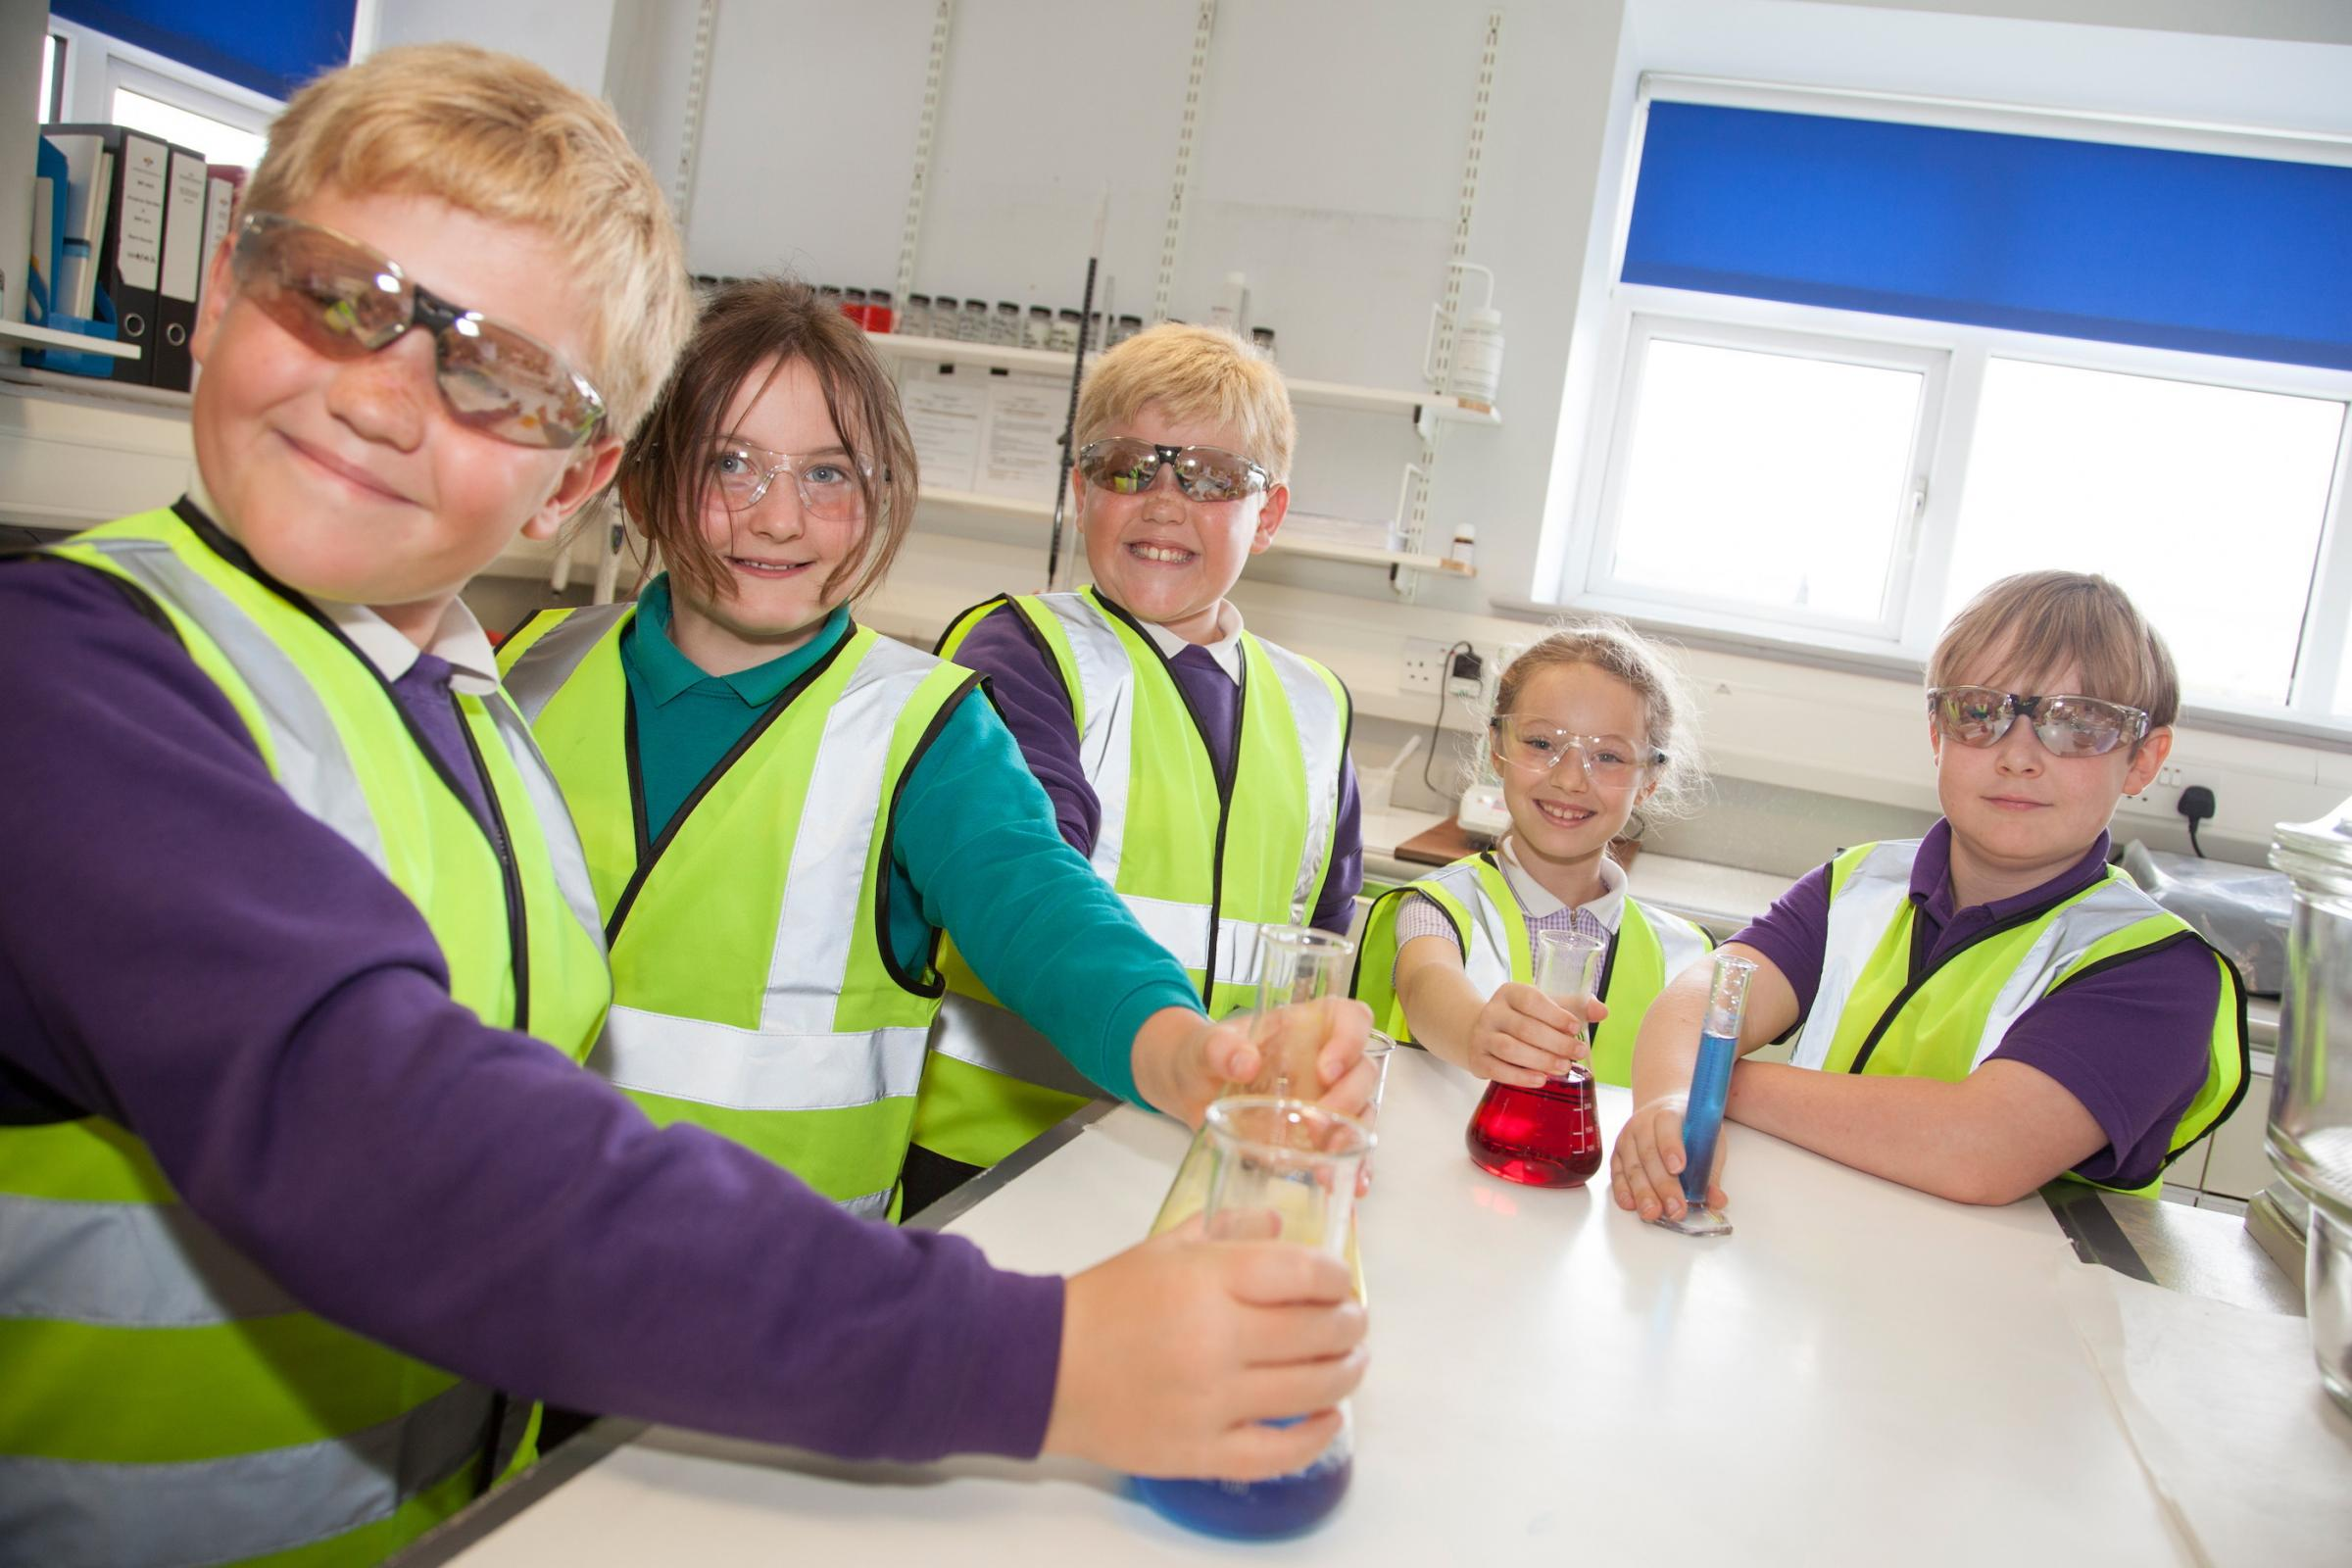 Pupils take part in experiments during the visit to Airedale Chemical